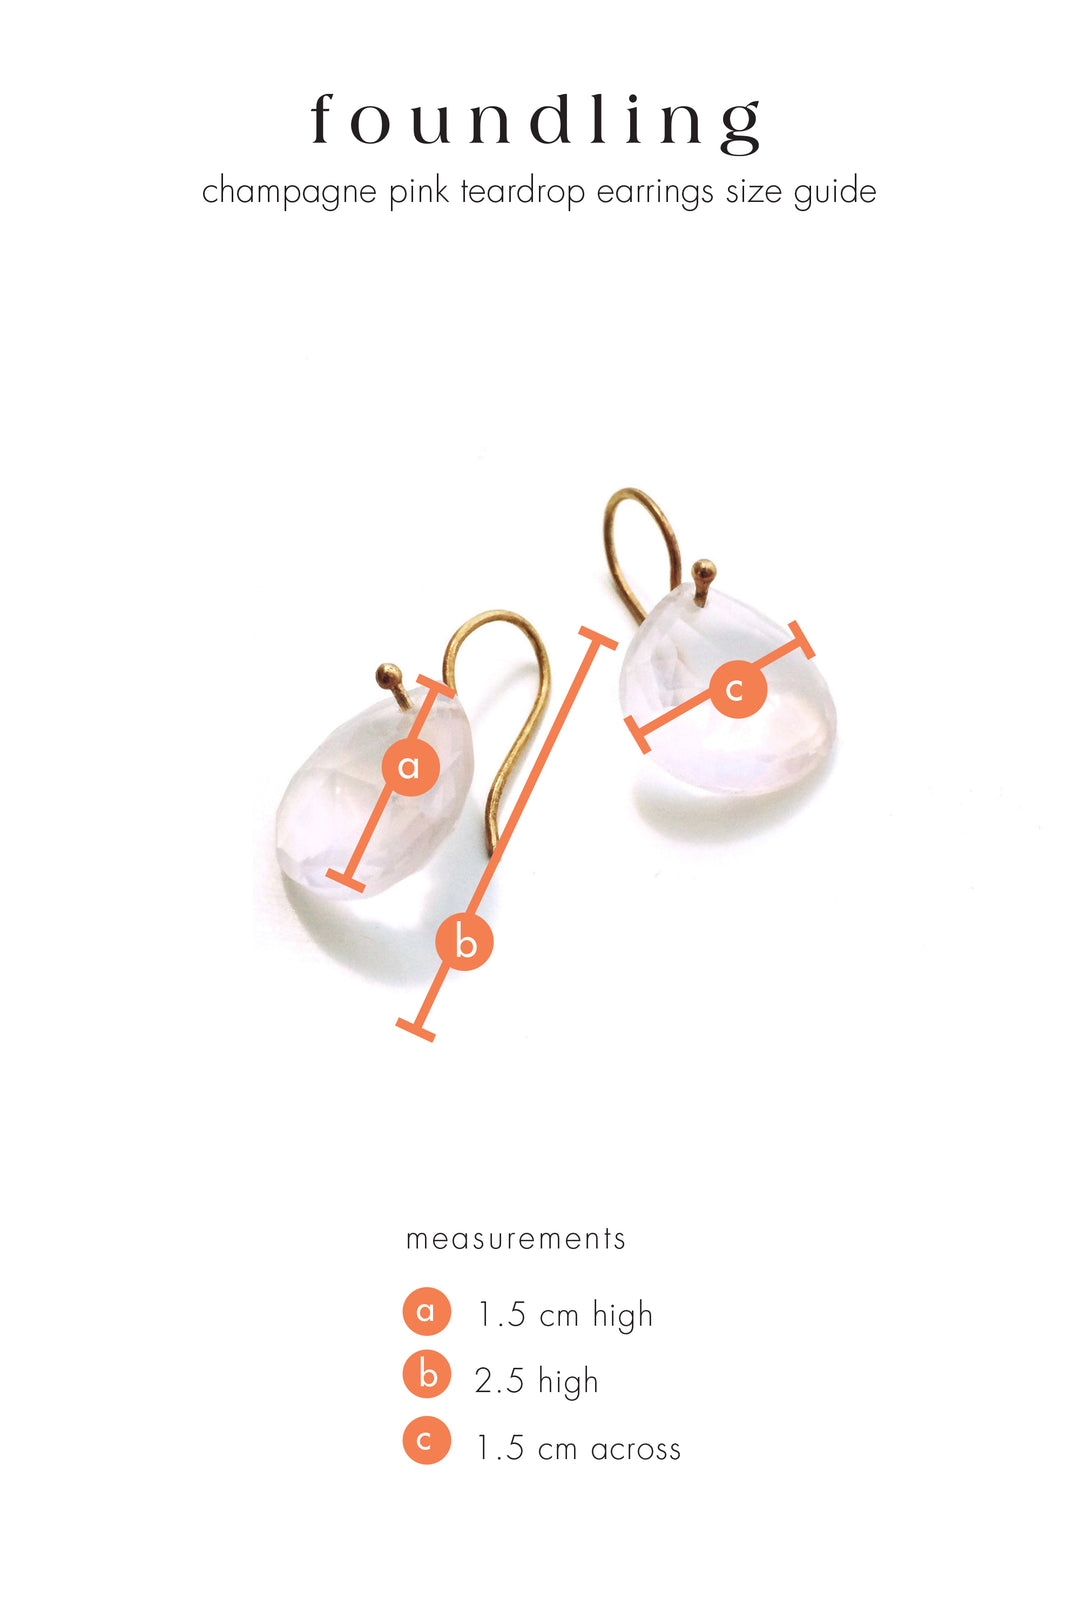 Champagne pink teardrop earrings